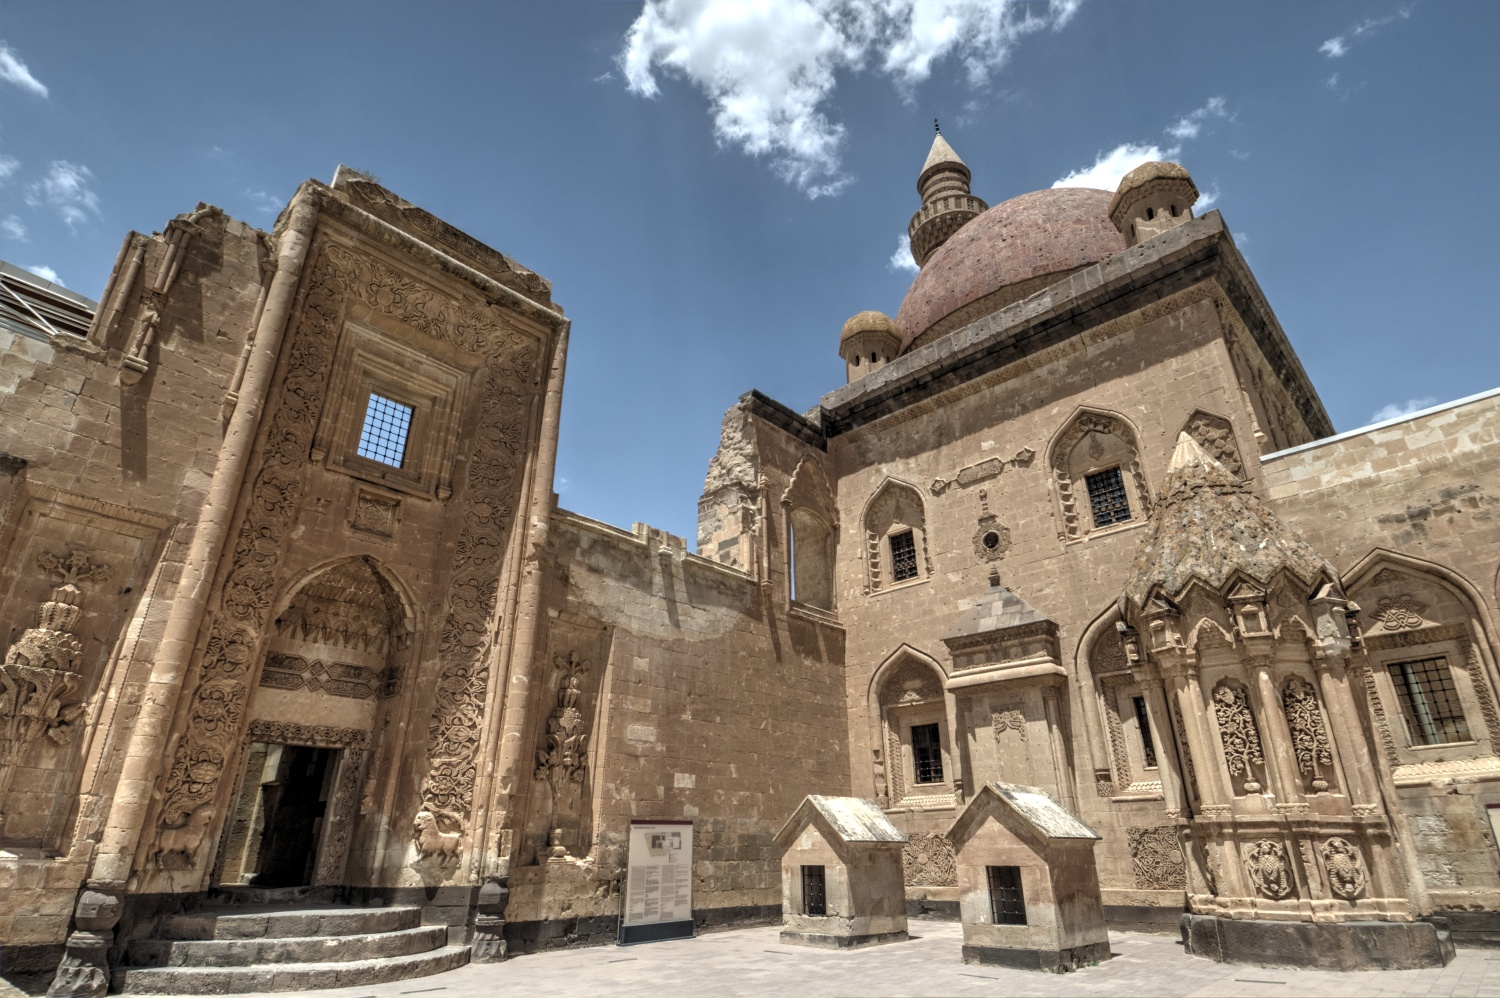 Ishak Pasha Palace - the gate to the harem section, the mosque, and the mausoleum